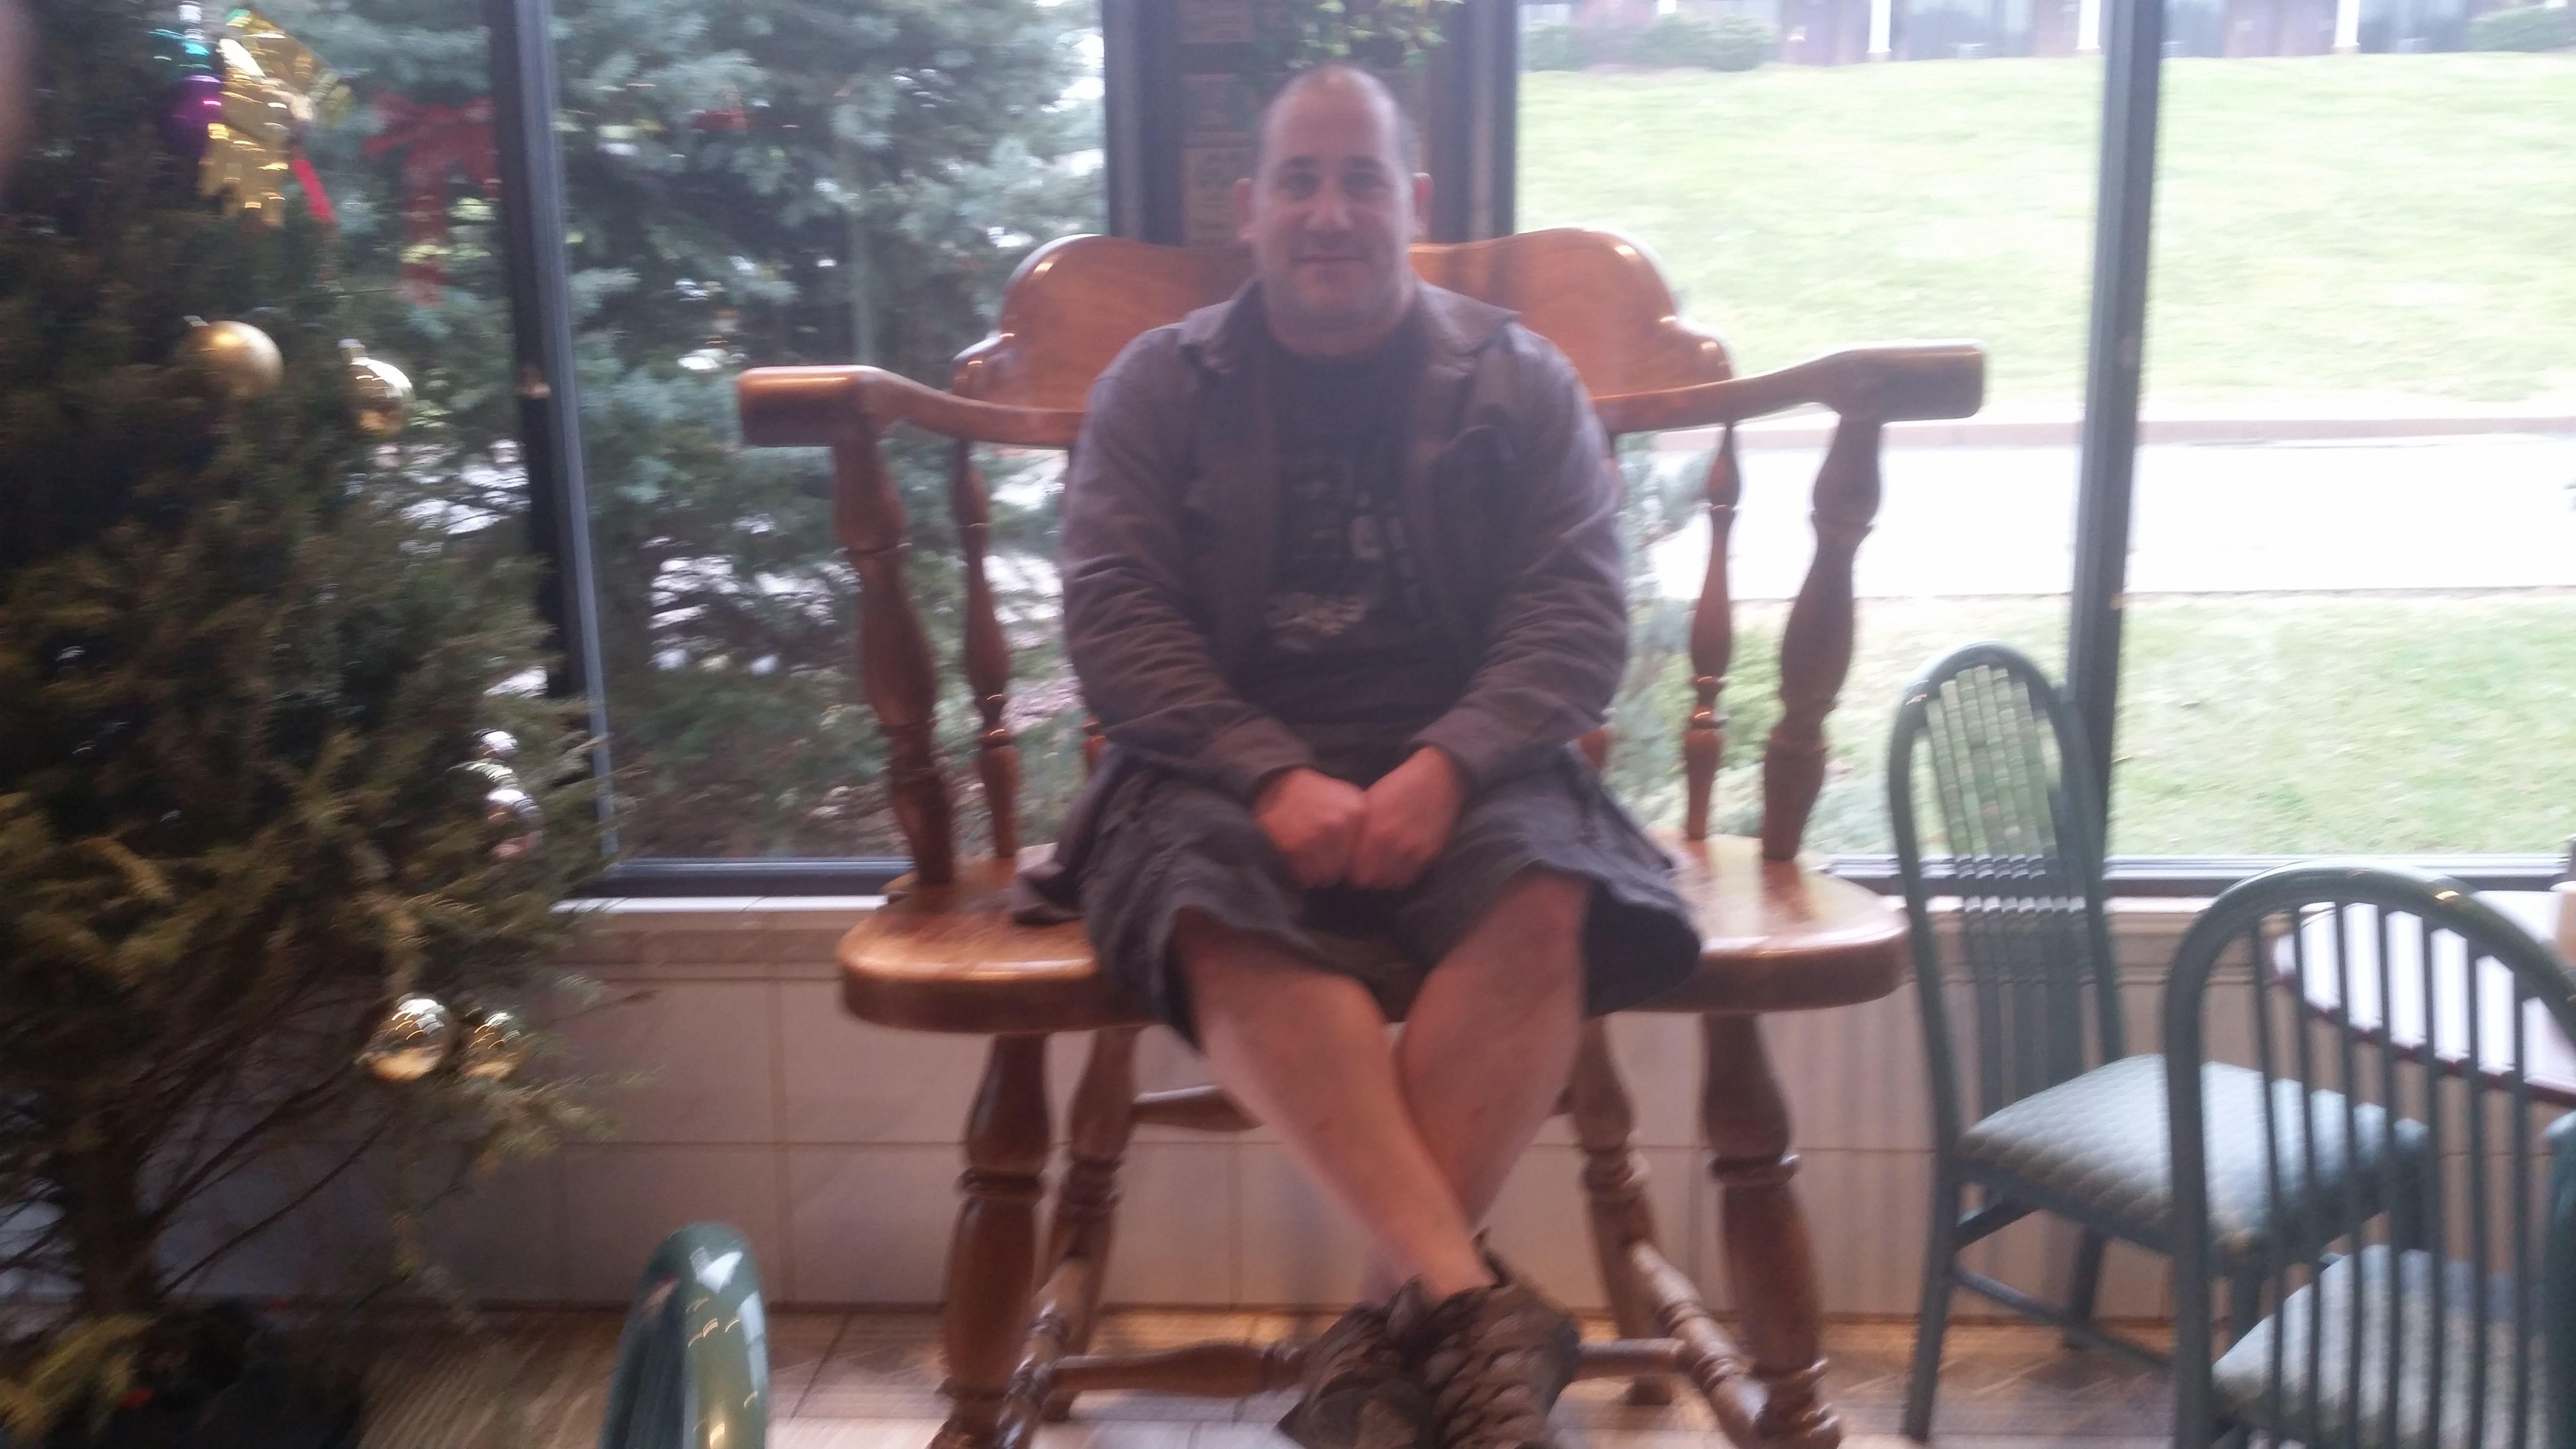 meet south plymouth singles Hi, looking to meet people in the plymouth area i have been in plymouth for about five years and due to social anxiety i haven't tried making friends, and want to change that.